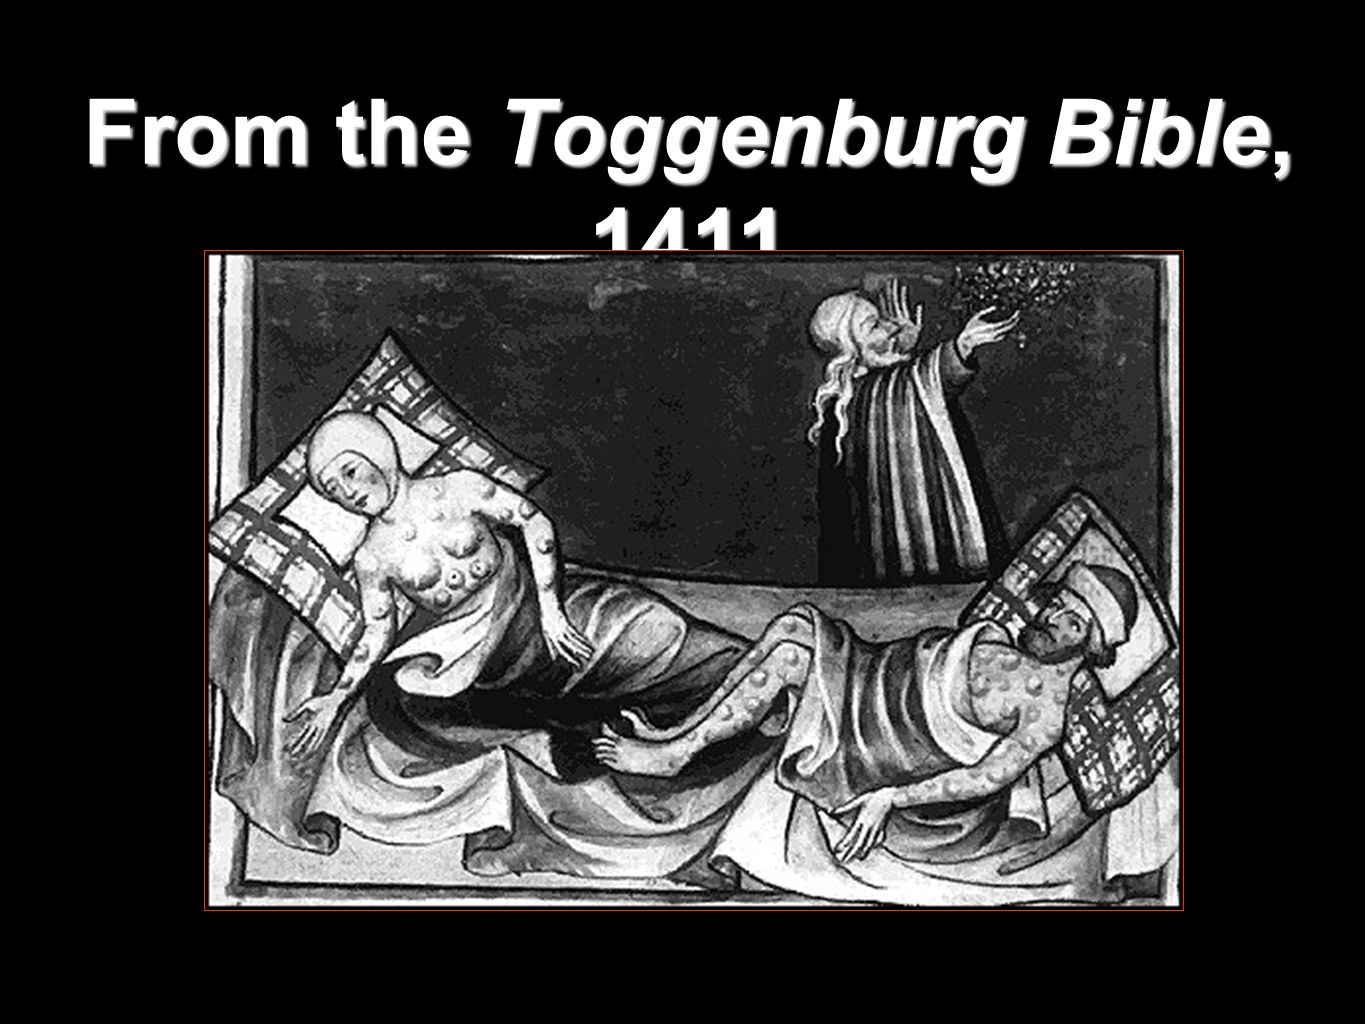 From the Toggenburg Bible, 1411